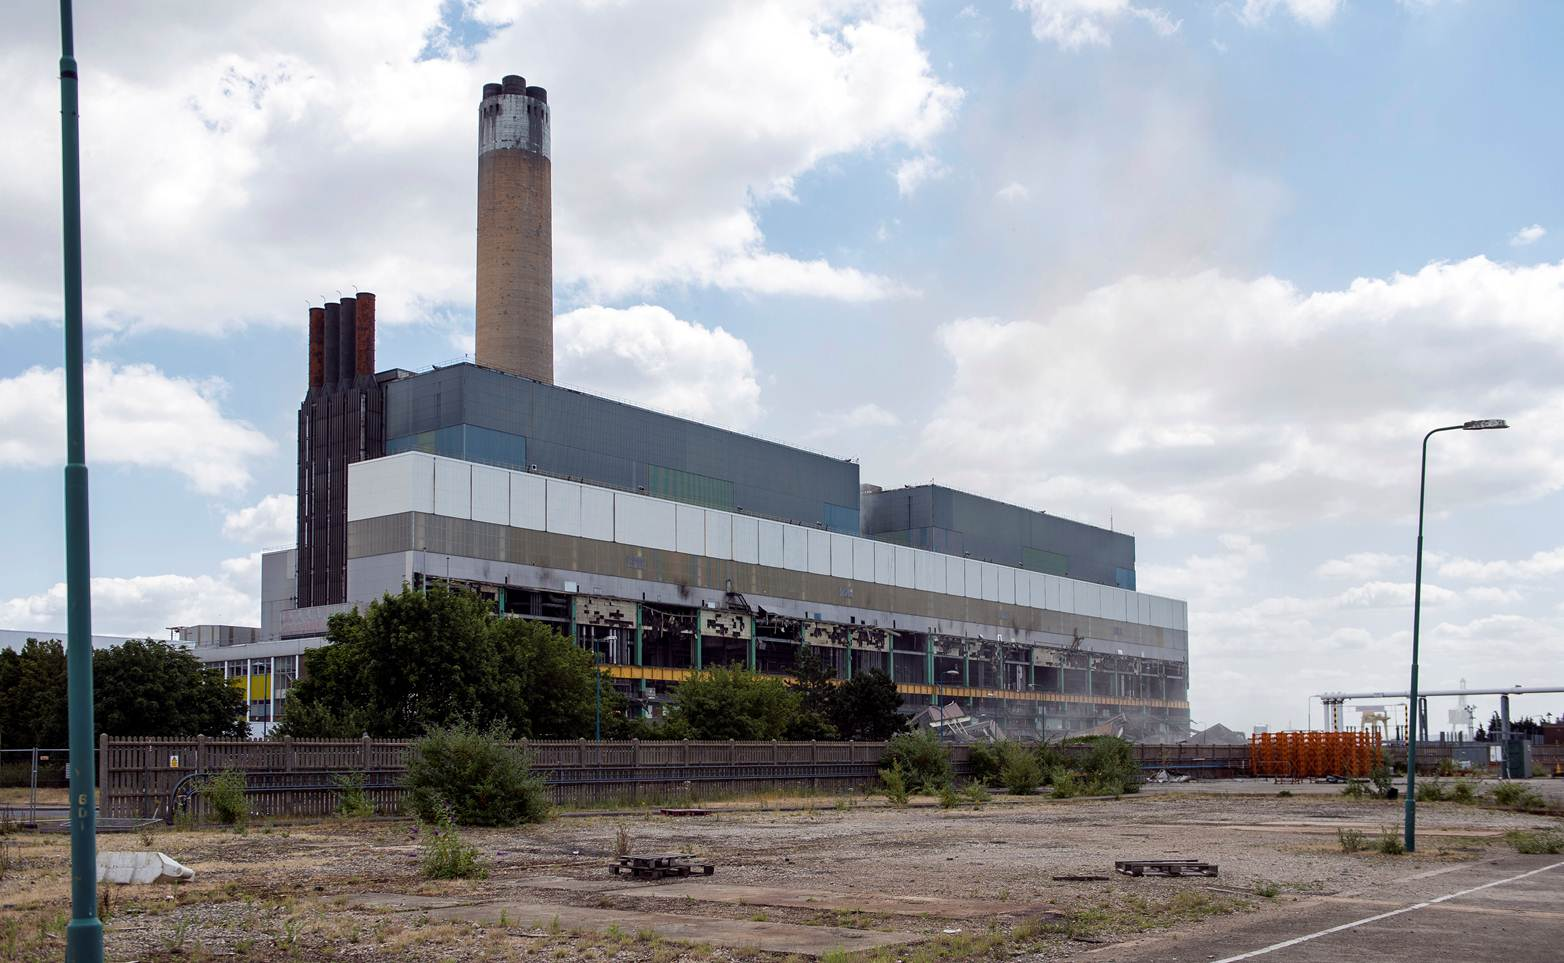 Demolition of Kingsnorth power station